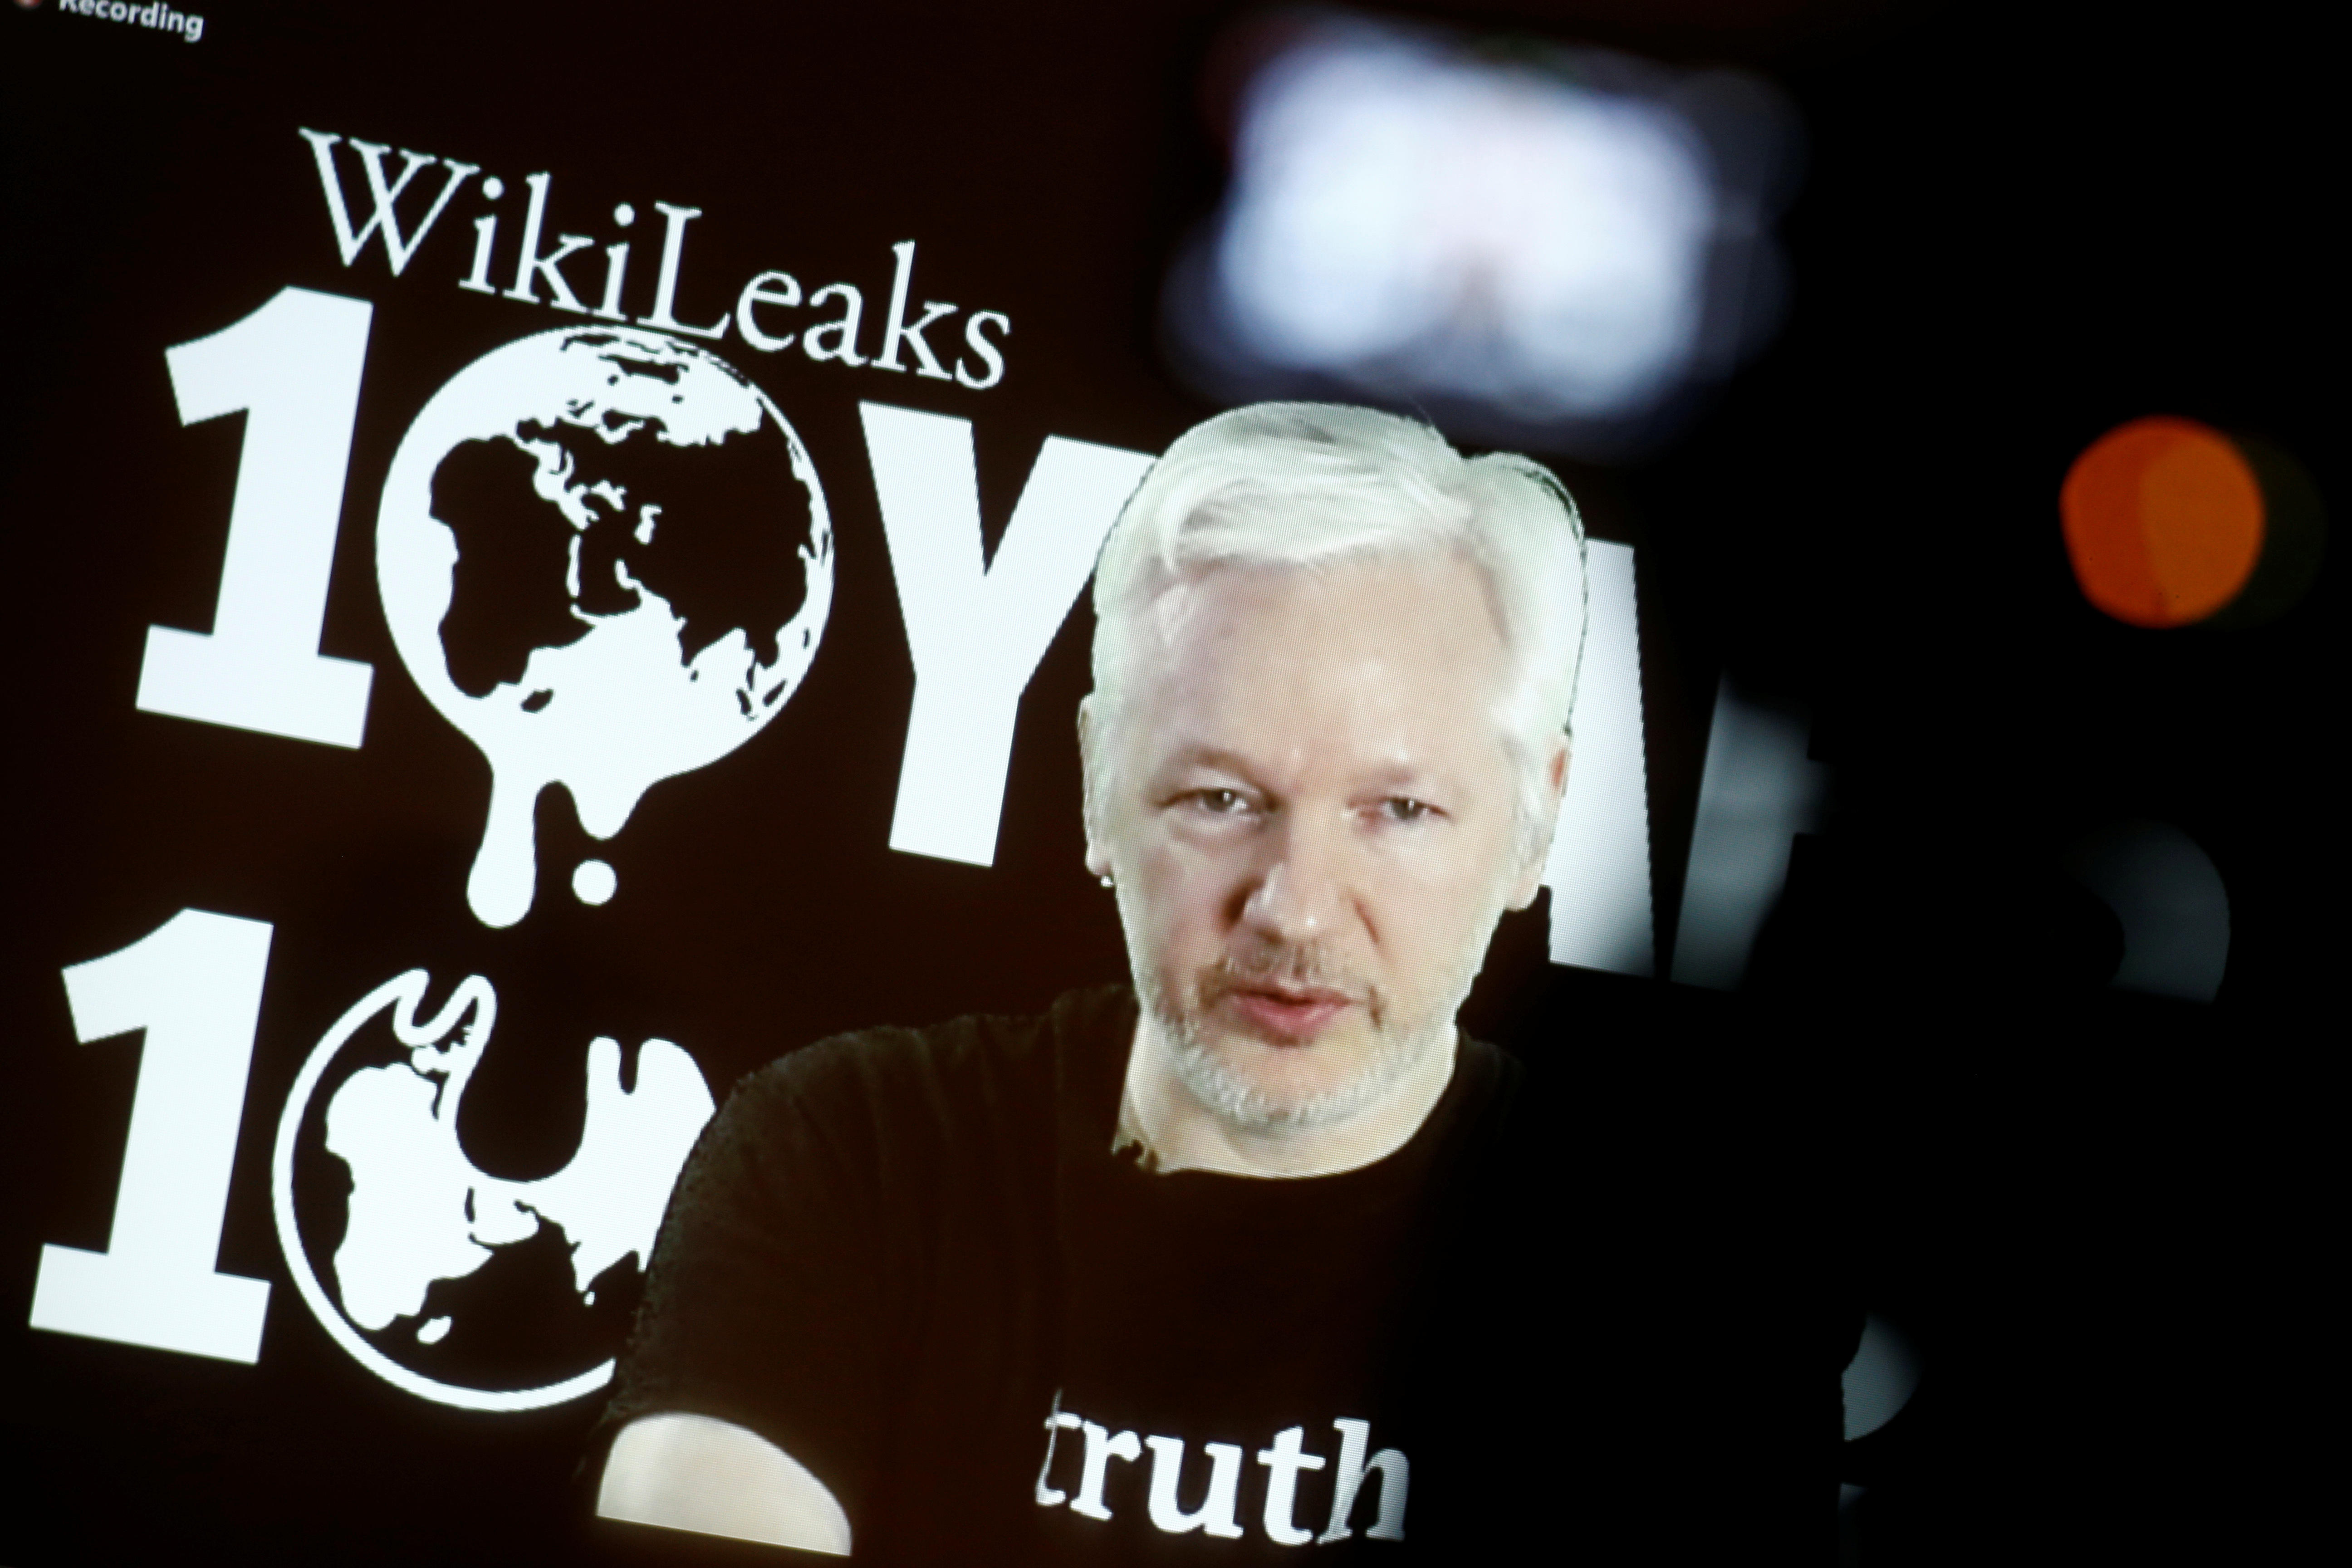 FBI opens investigation into CIA document theft and WikiLeaks